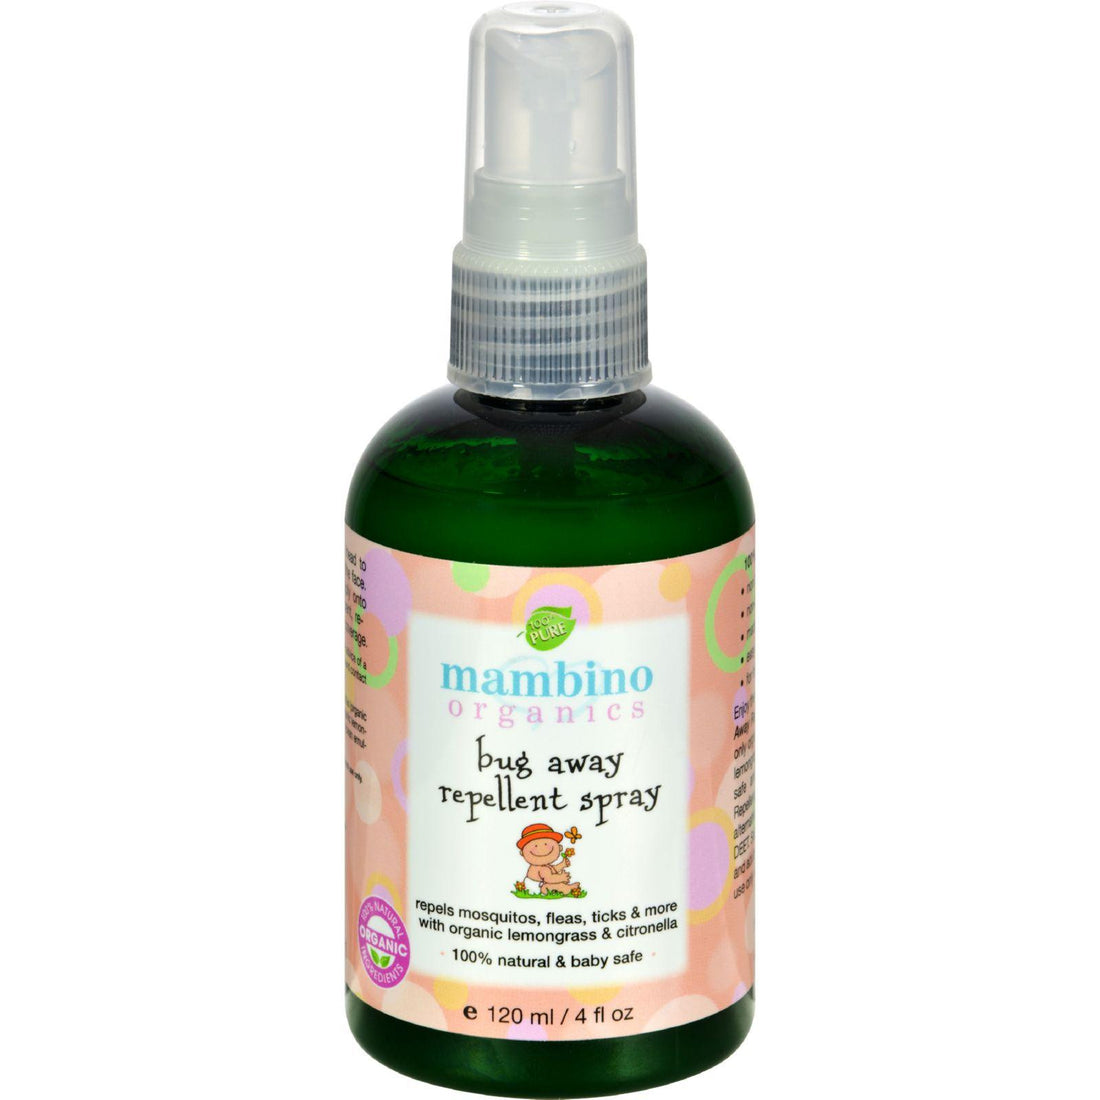 Mother Mantis: Mambino Organics Bug Away Insect Repellent Spray - 4 Fl Oz Mambino Organics